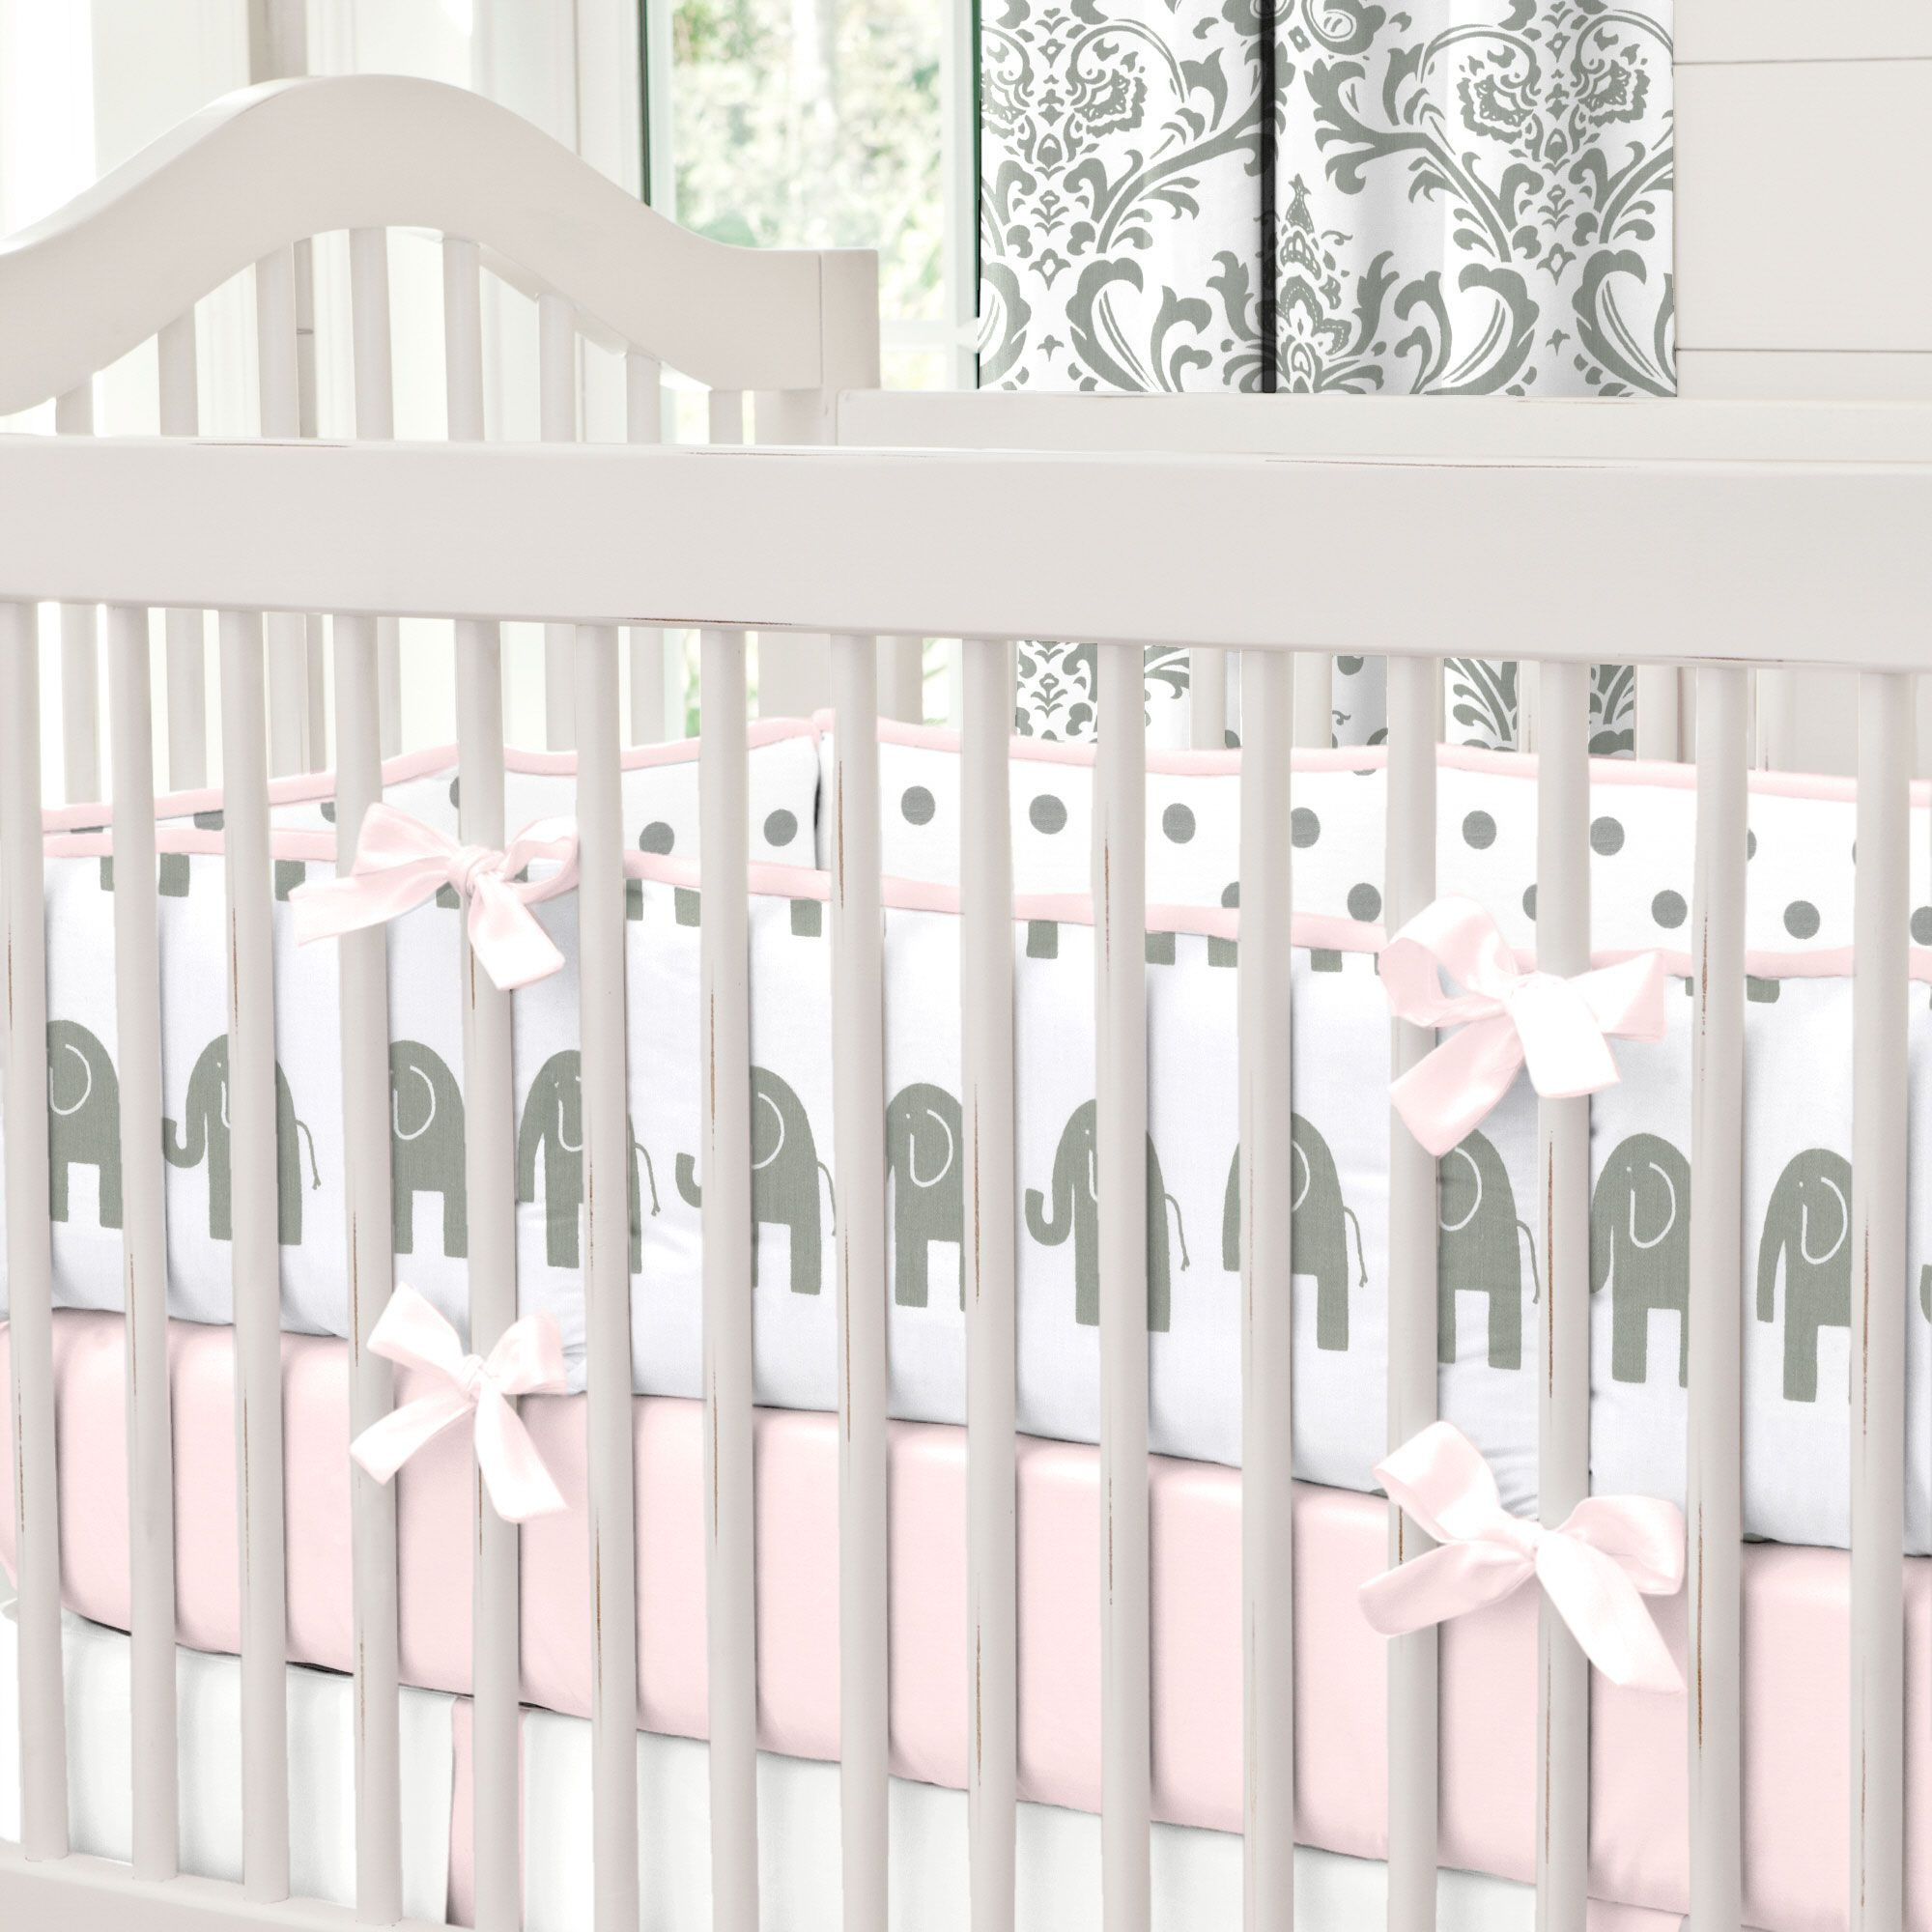 trap death crib bump the bumper parents touch or decorative s edited bumpers somebody